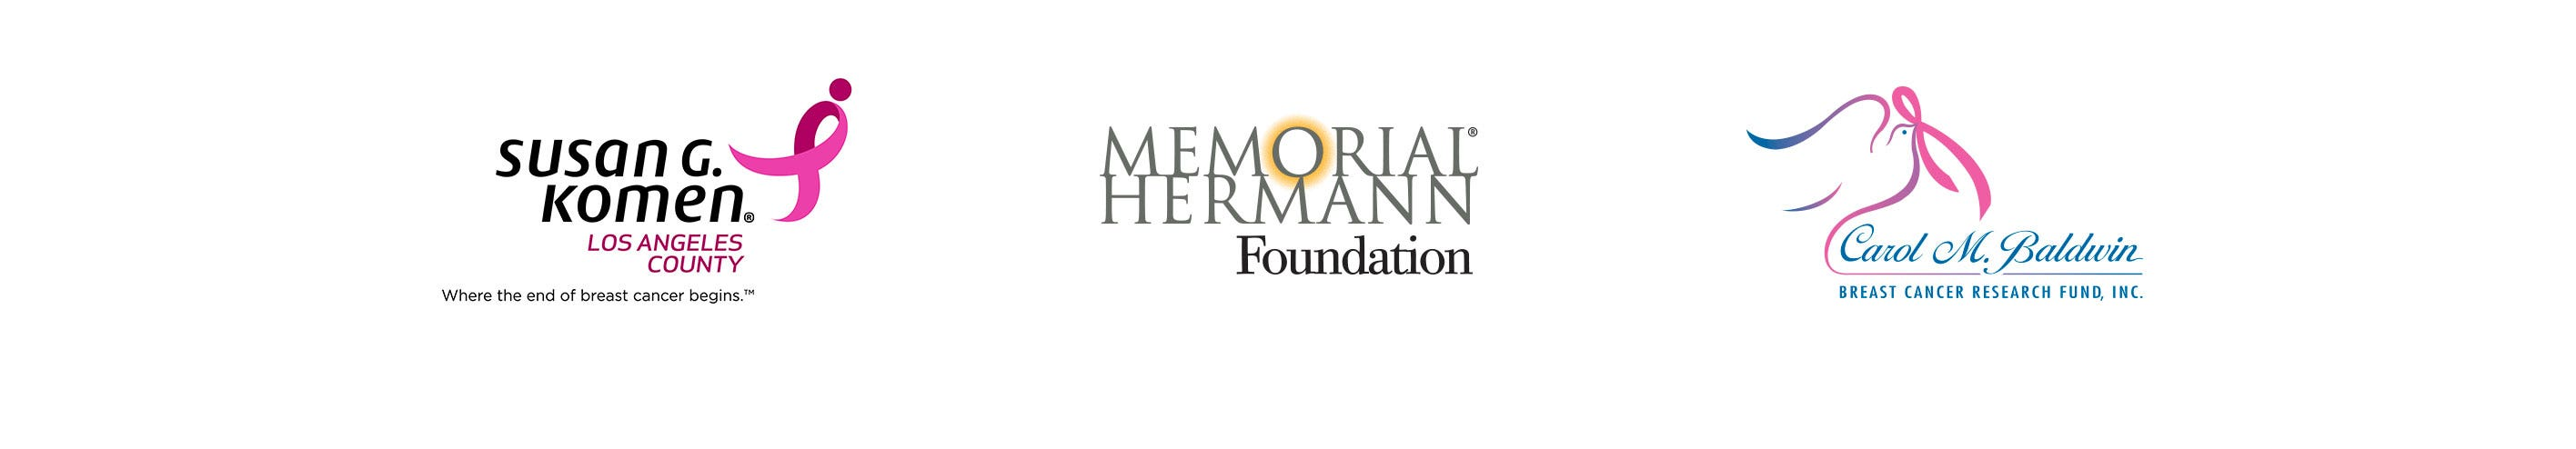 Carol M. Baldwin Breast Cancer Research Fund, The Memorial Hermann Foundation, and Susan G. Komen.